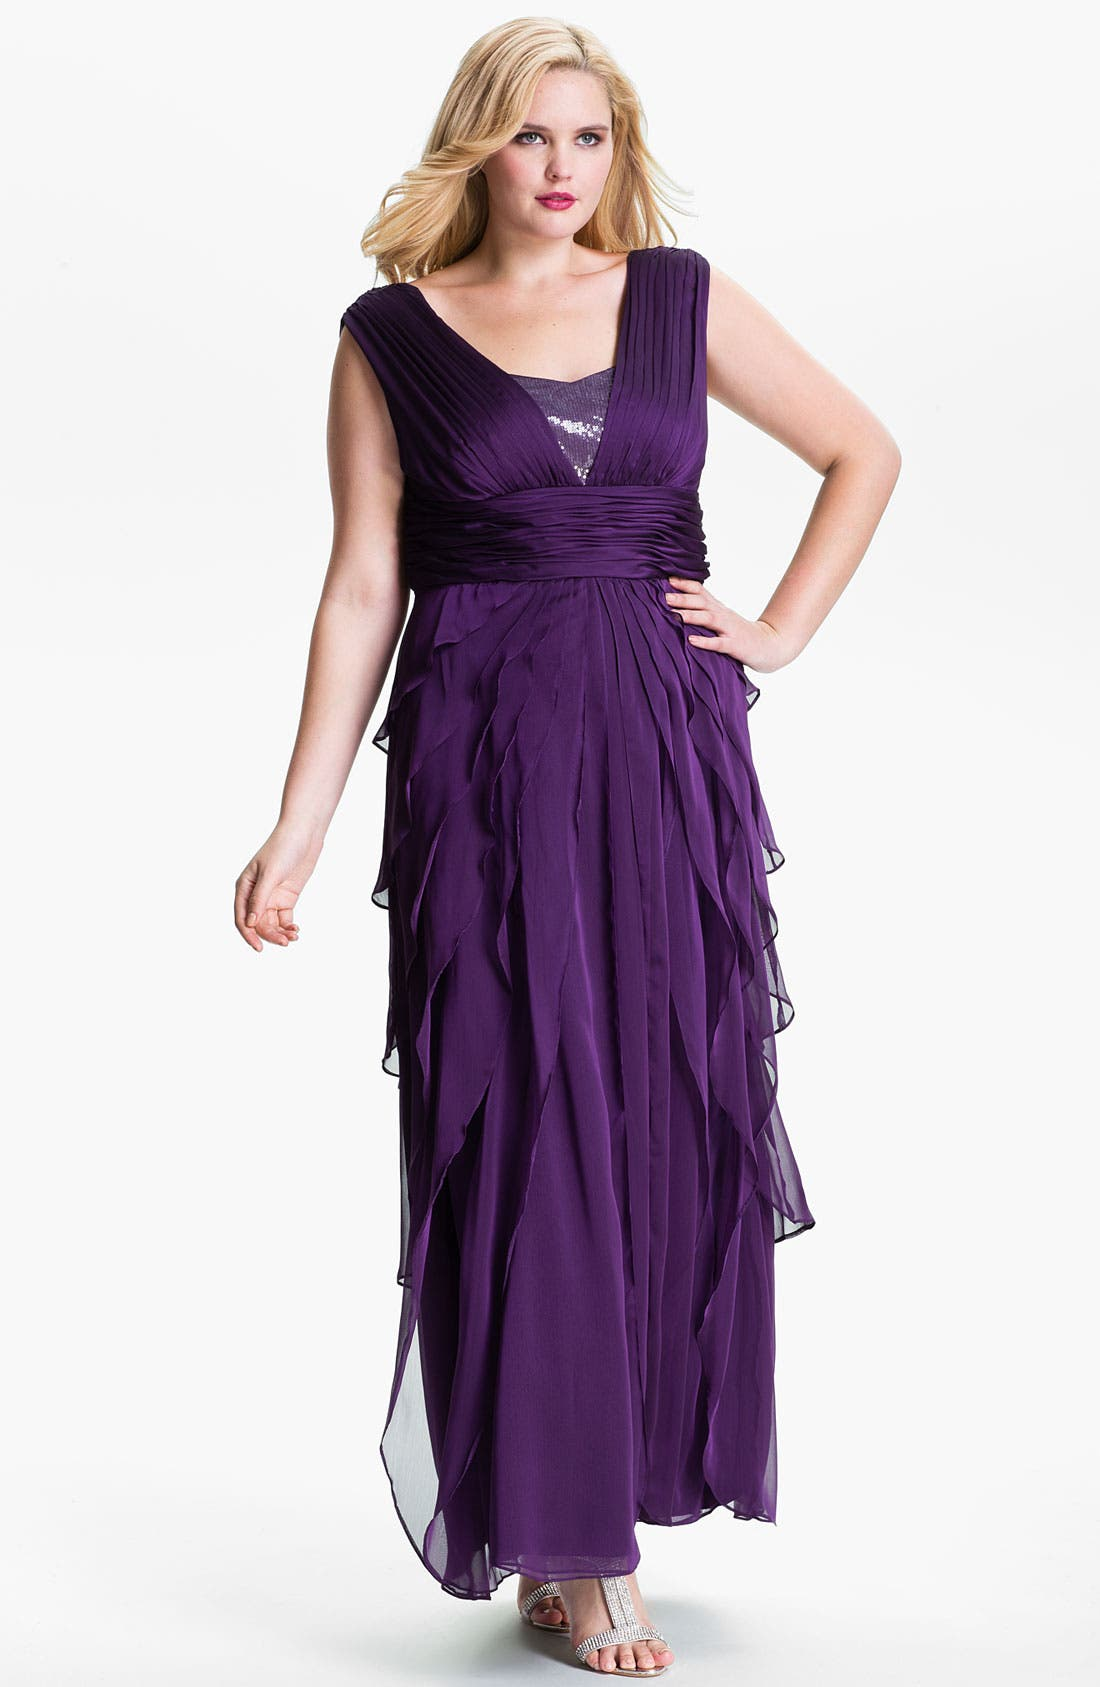 Alternate Image 1 Selected - Adrianna Papell Chiffon Petal Gown (Plus)